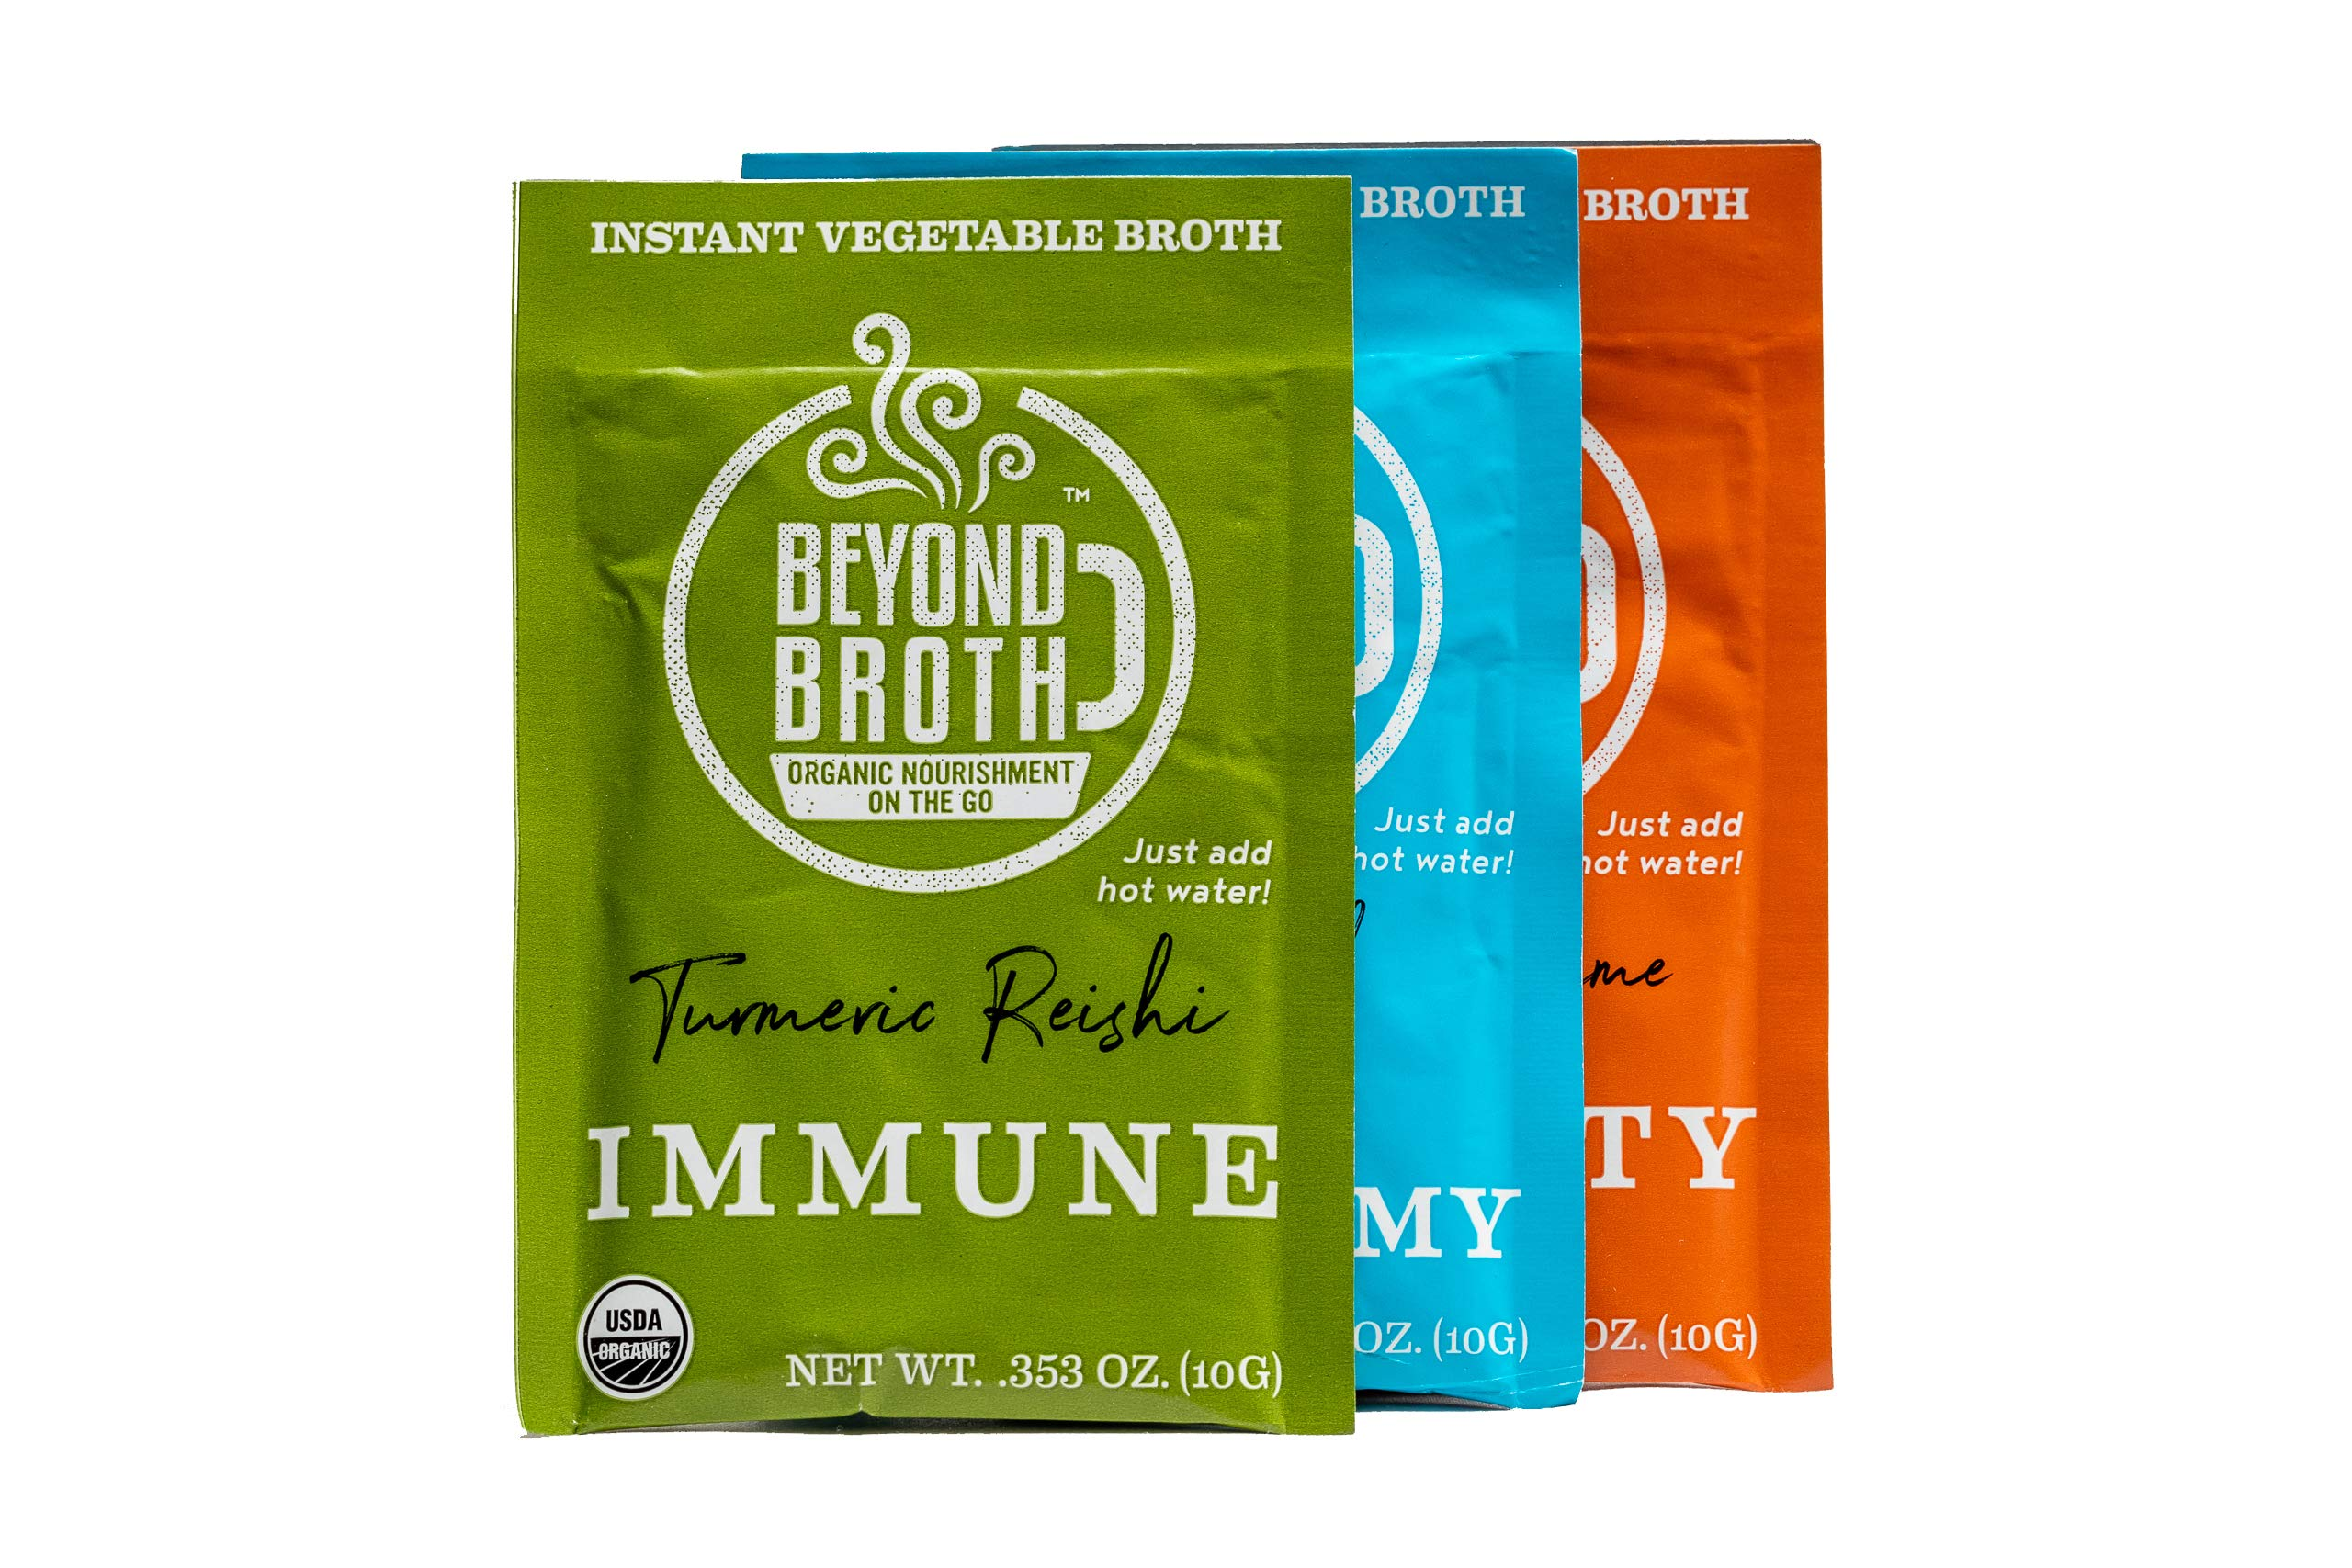 Beyond Broth Trial Variety Pack Organic Vegan Vegetable Instant Sipping Broth For On The Go Or Cooking Keto, Paleo and Whole30 Friendly 1 Single Serve Packet of each Flavor